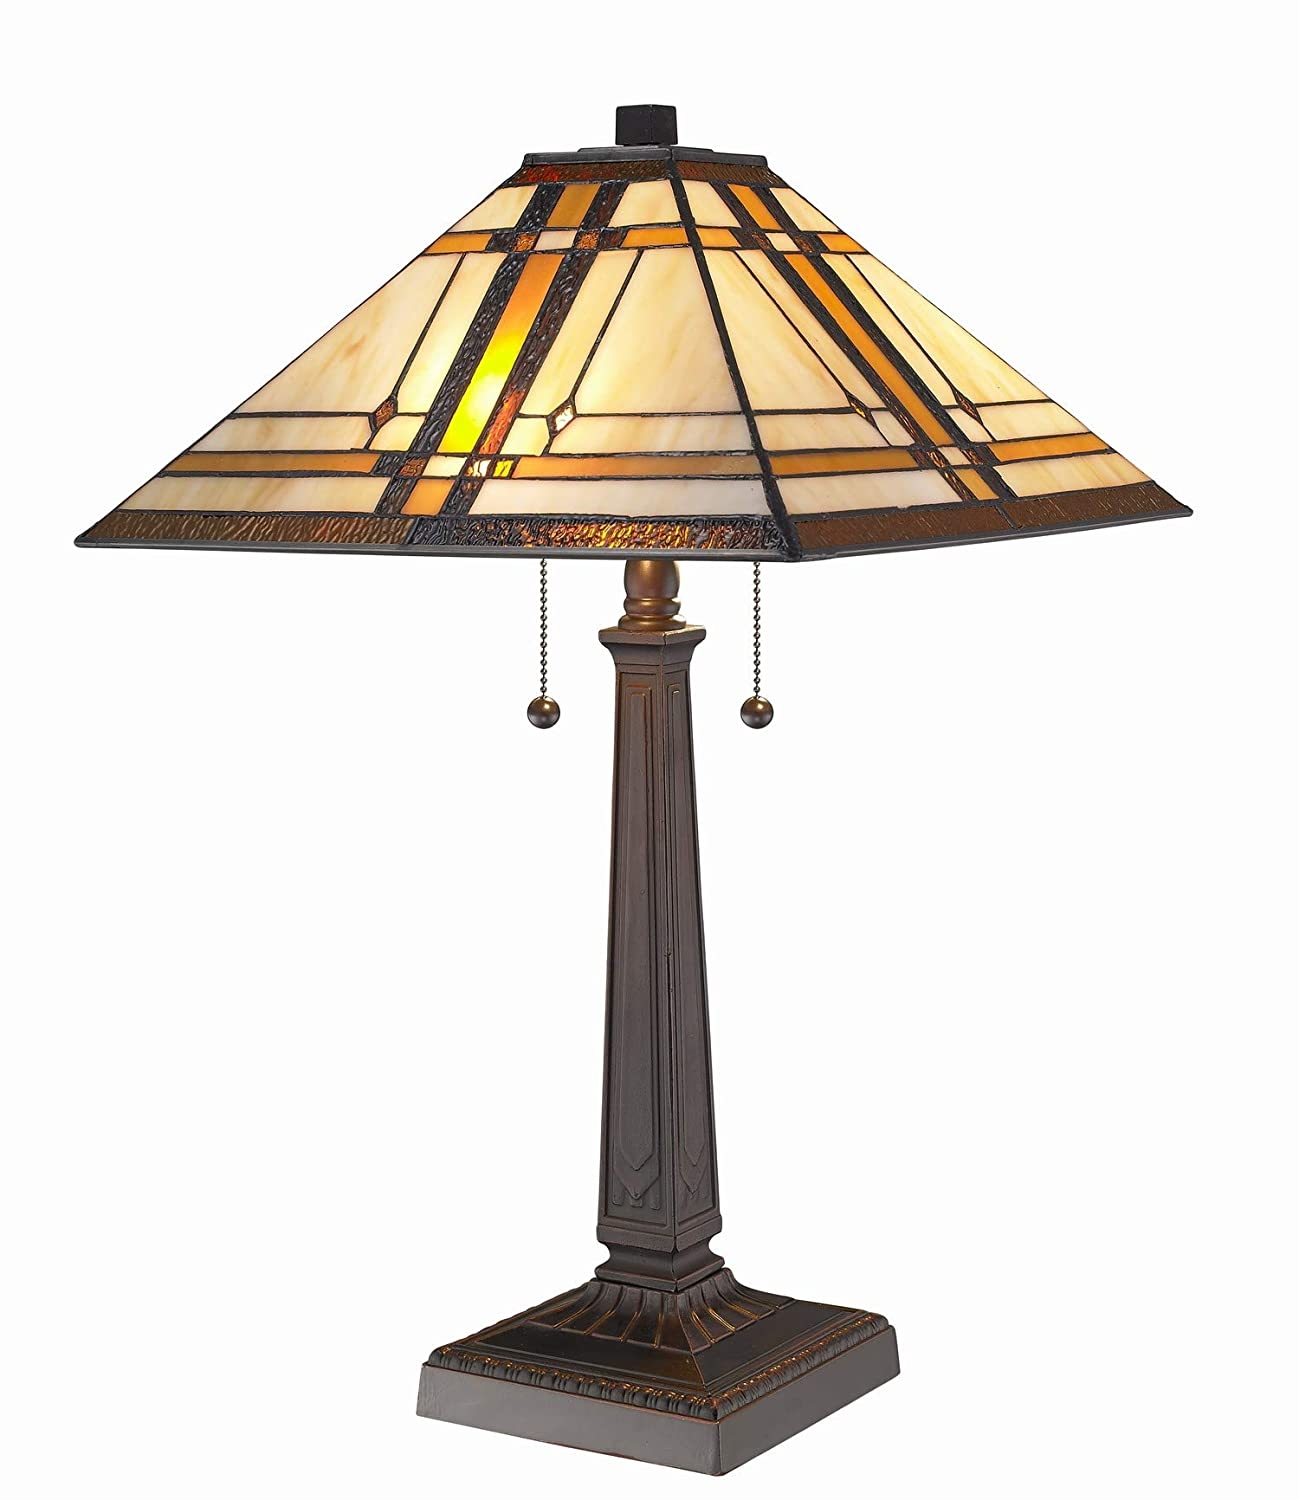 Amora Lighting AM1053TL14 Tiffany Style Mission Design Table Lamp, 14""